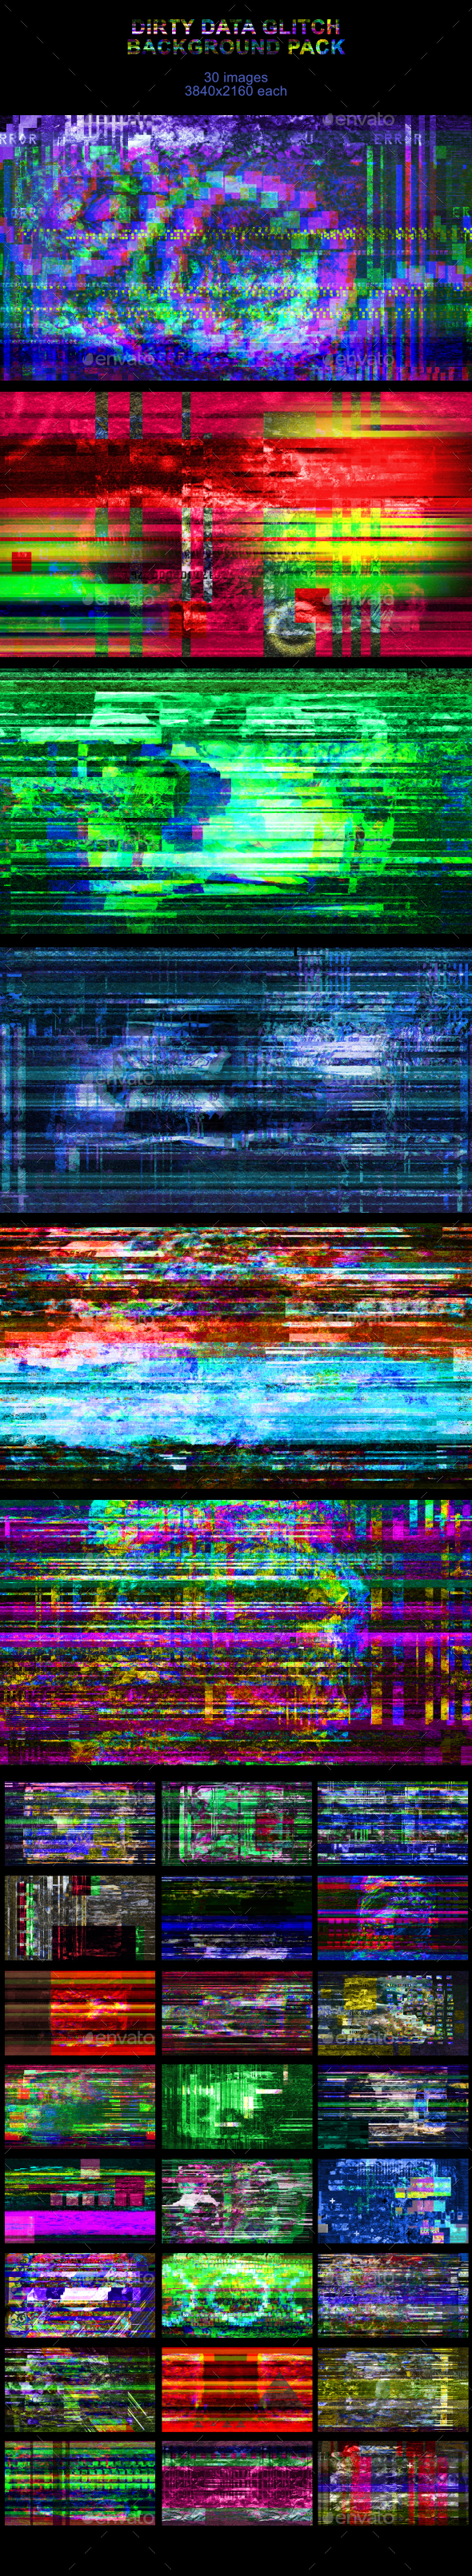 GraphicRiver Dirty Data Glitch Background Pack 20701757